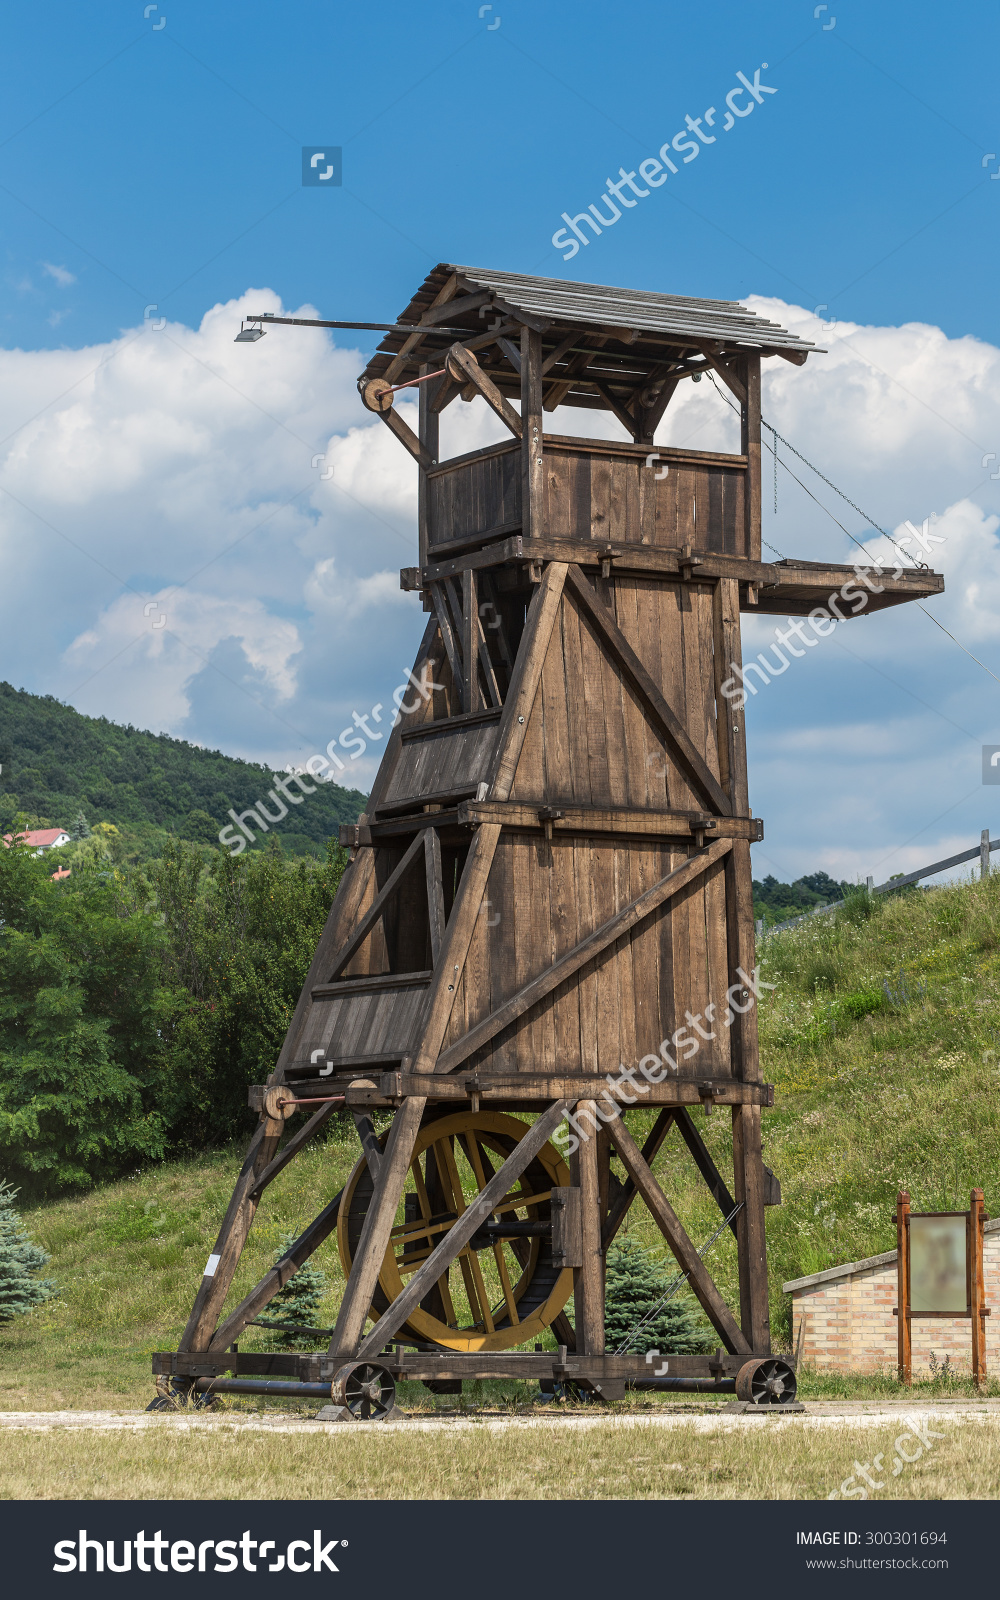 Wooden Belfry Siege Tower Used Attack Stock Photo 300301694.